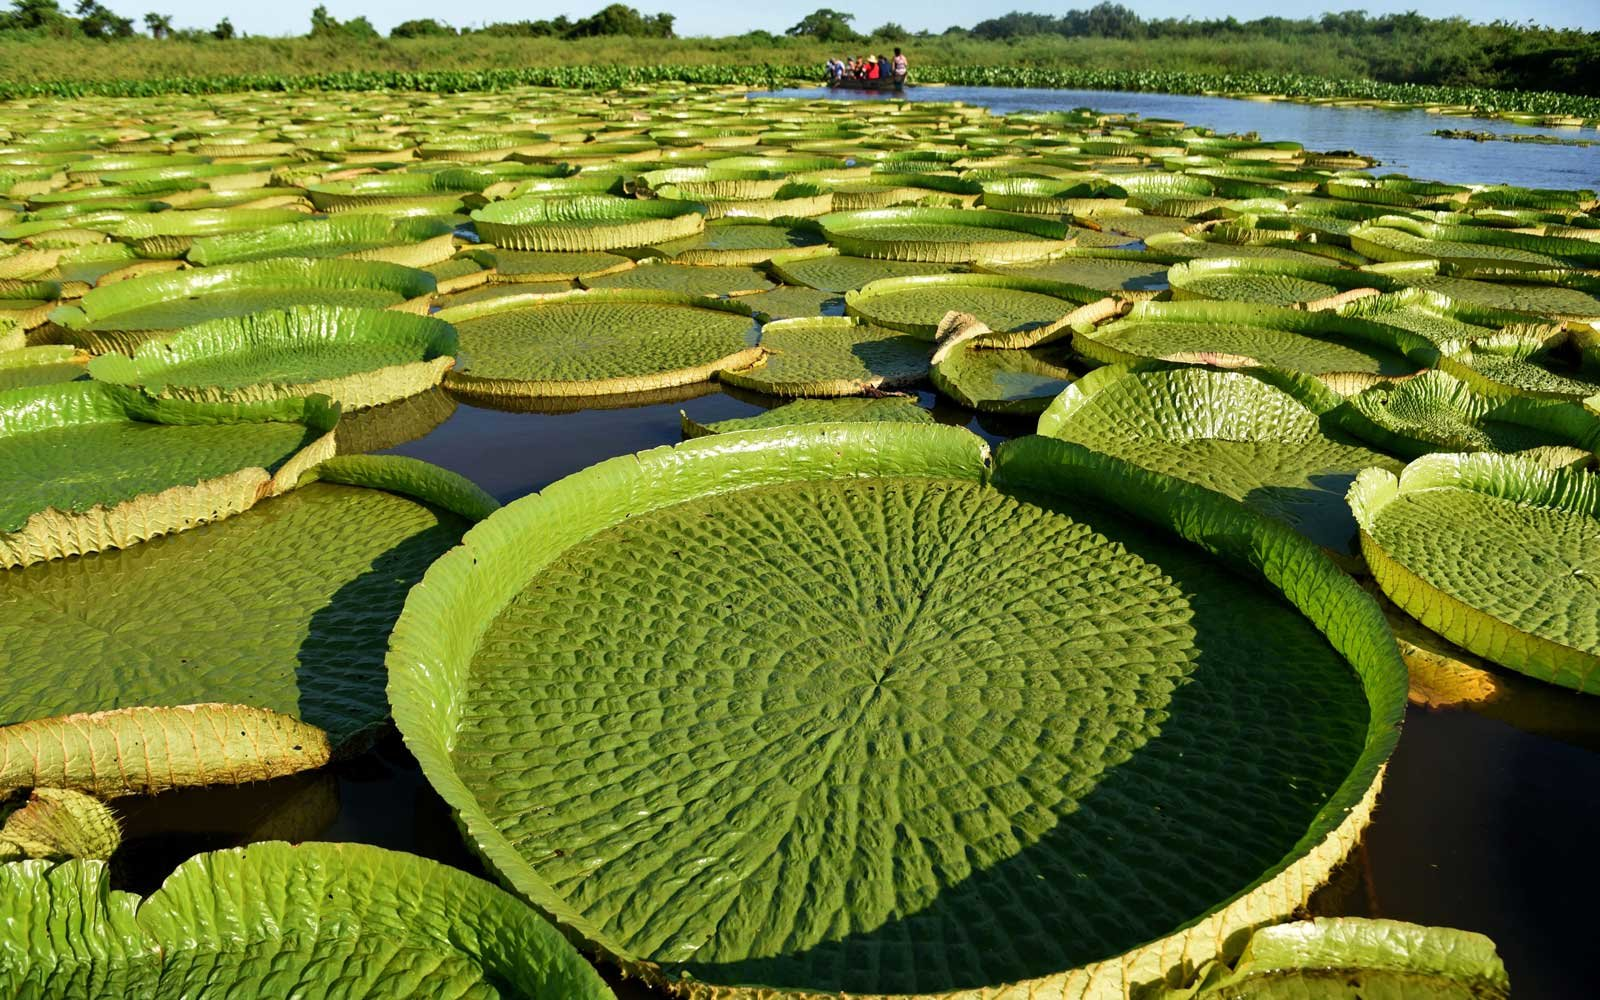 paraguays giant lily pads magically reappeared after